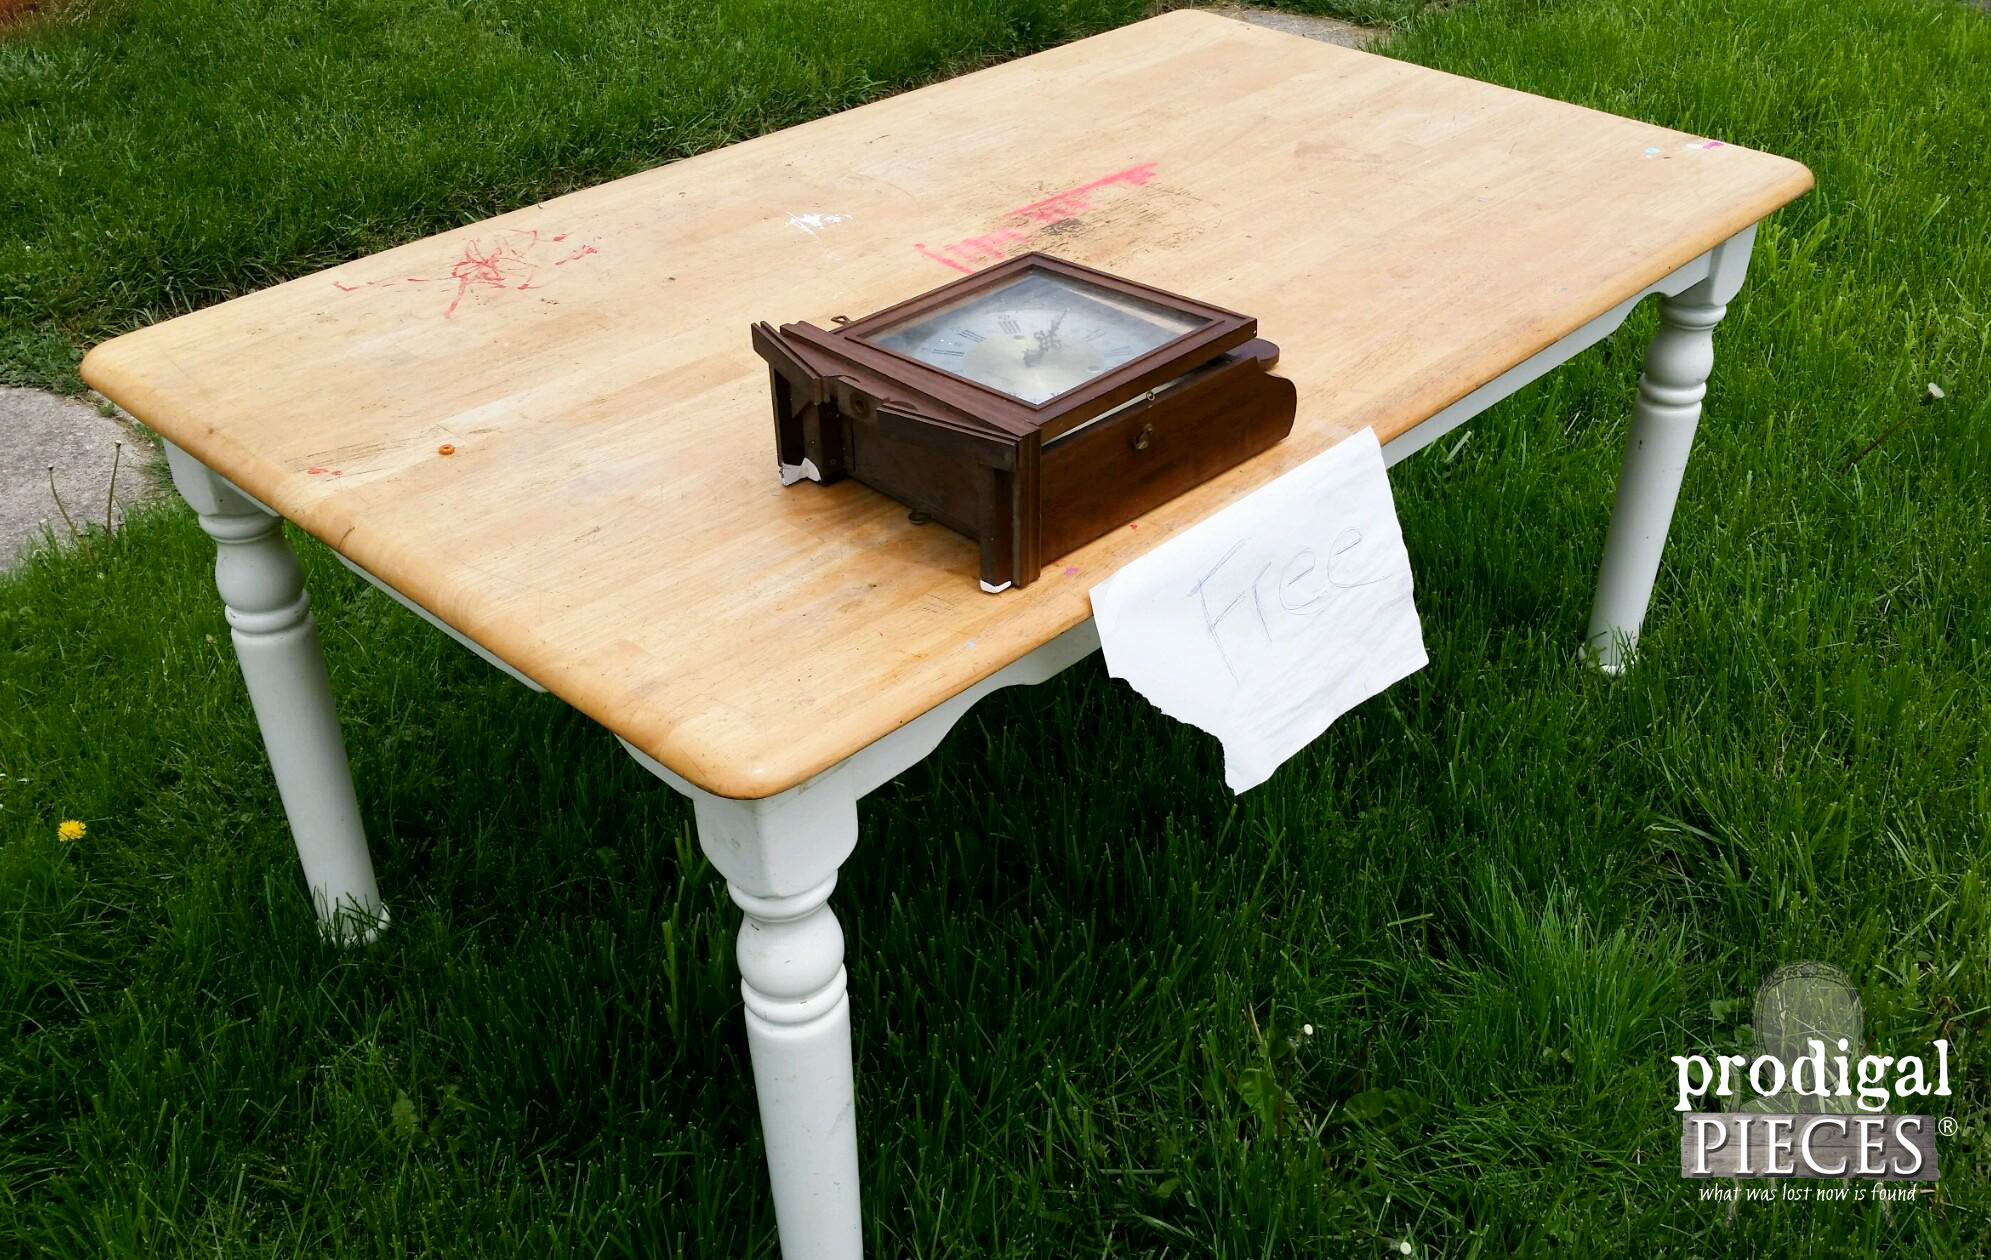 Curbside Find Farmhouse Table and Wall Clock | Prodigal Pieces | www.prodigalpieces.com